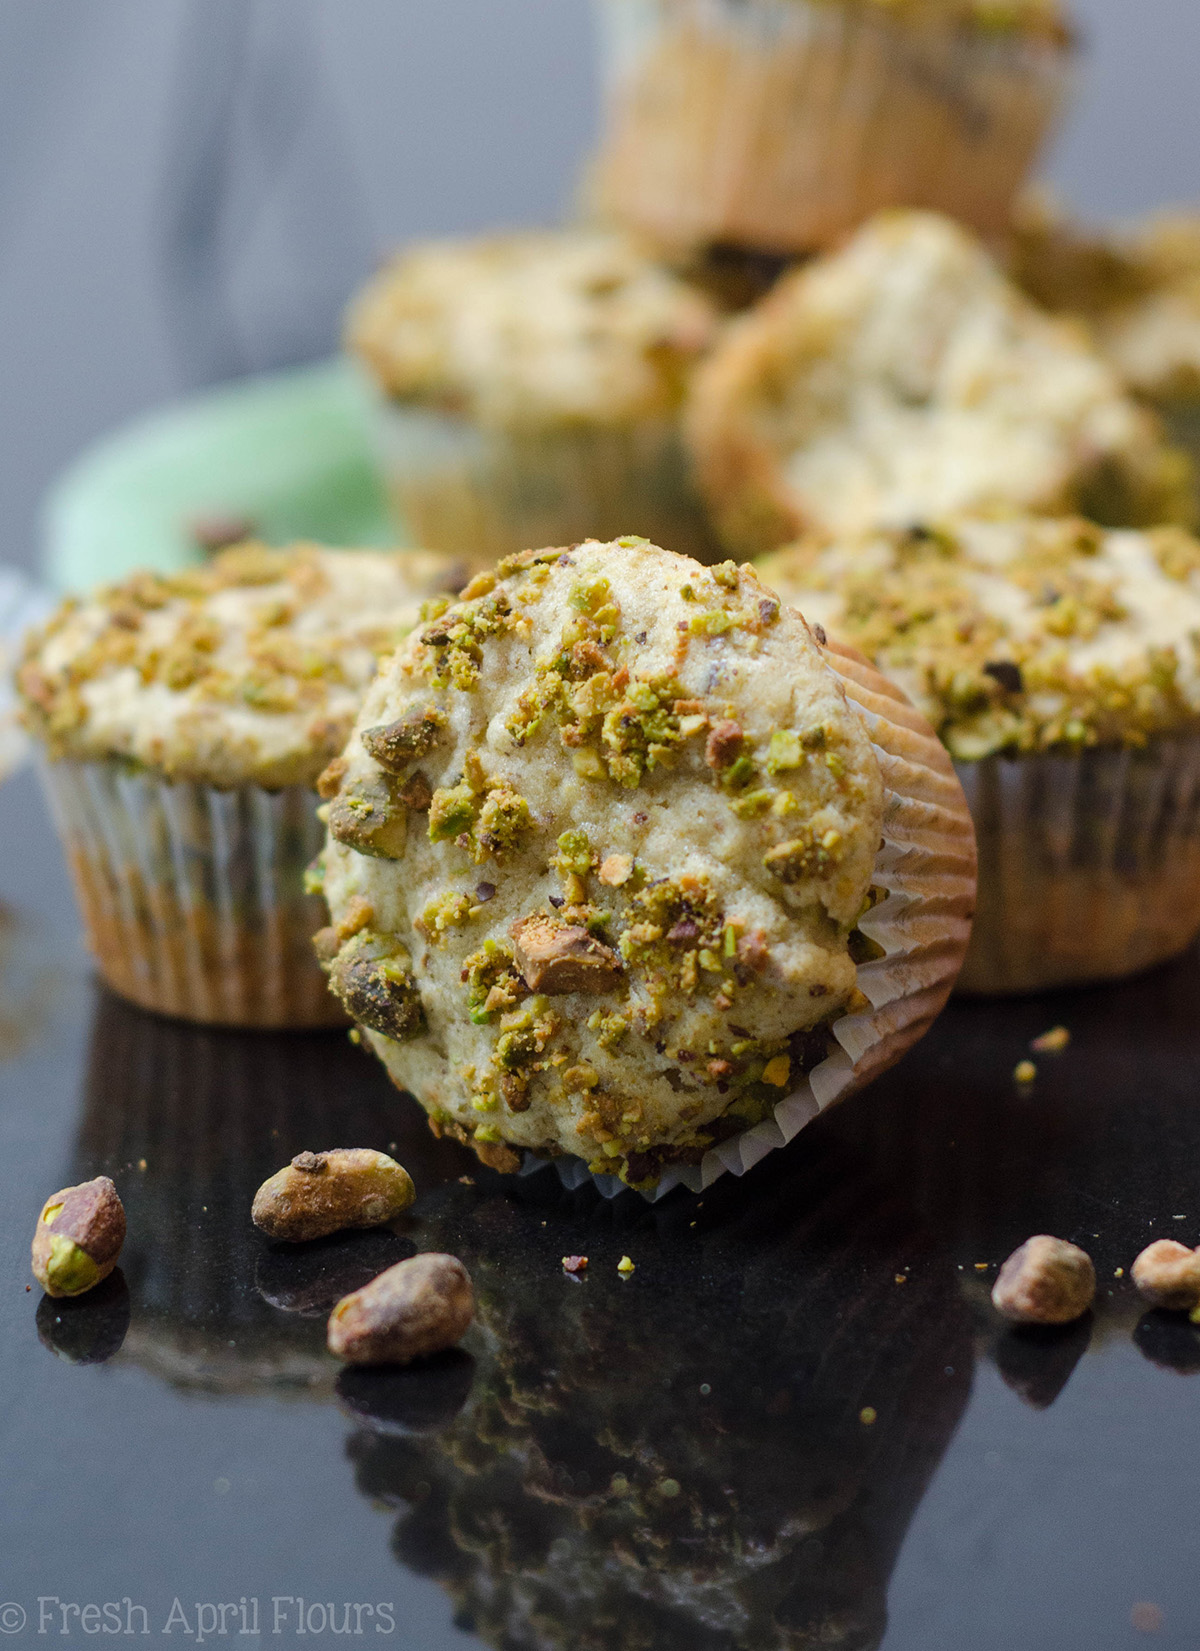 pistachio muffin on its side with muffins behind it